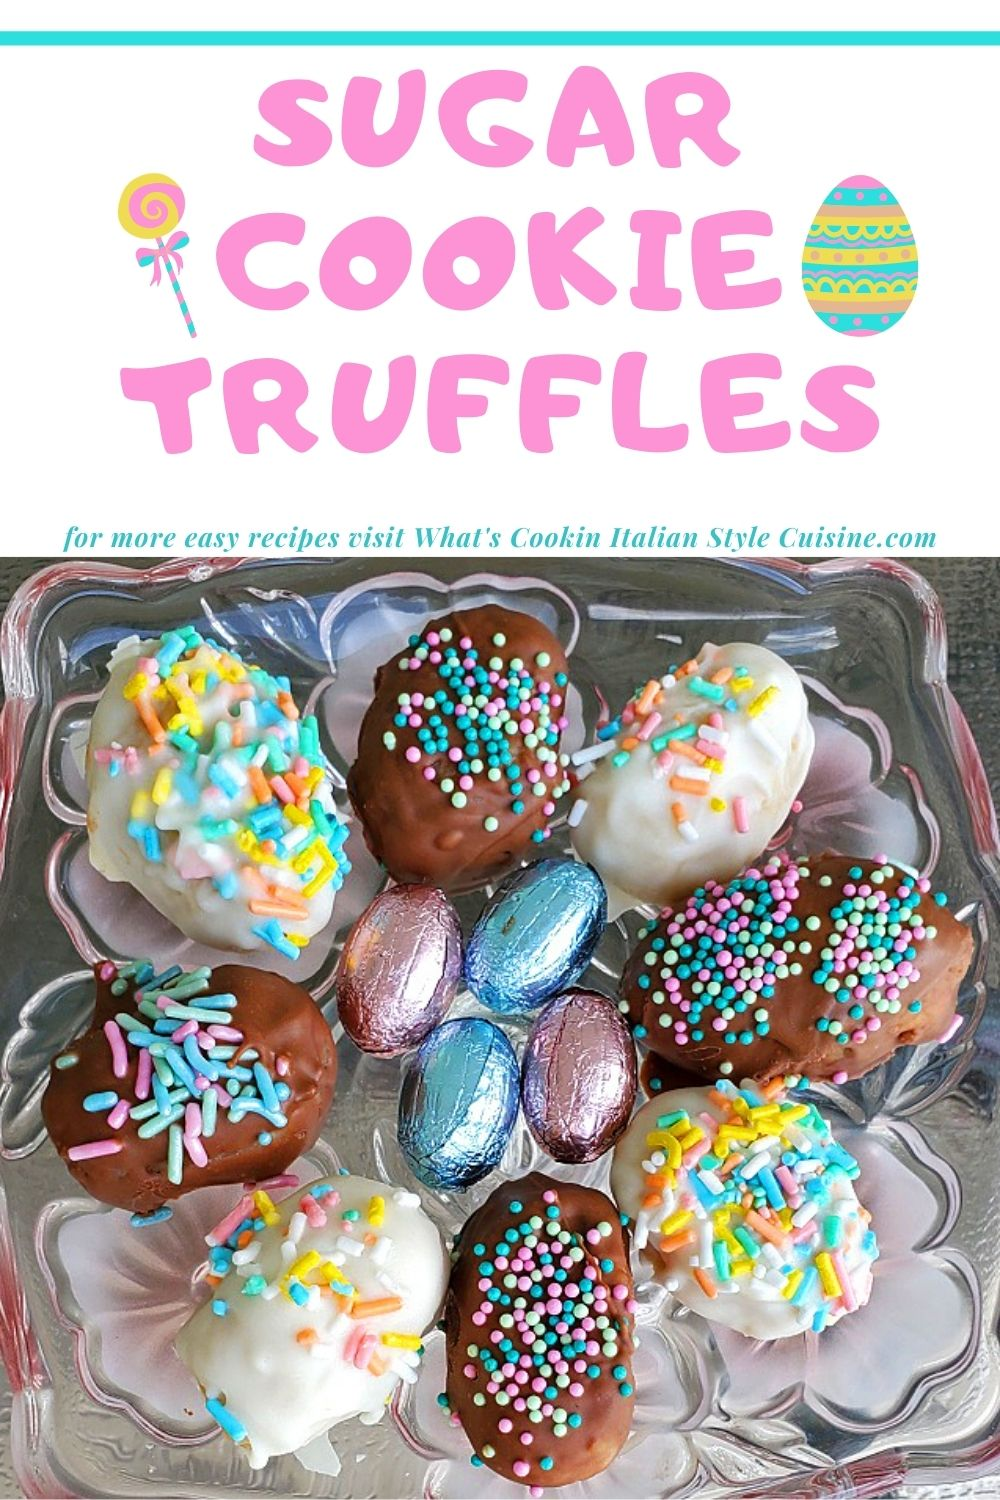 this is how to make a sugar cookie truffle pin for later using a cookie mix instructional recipe